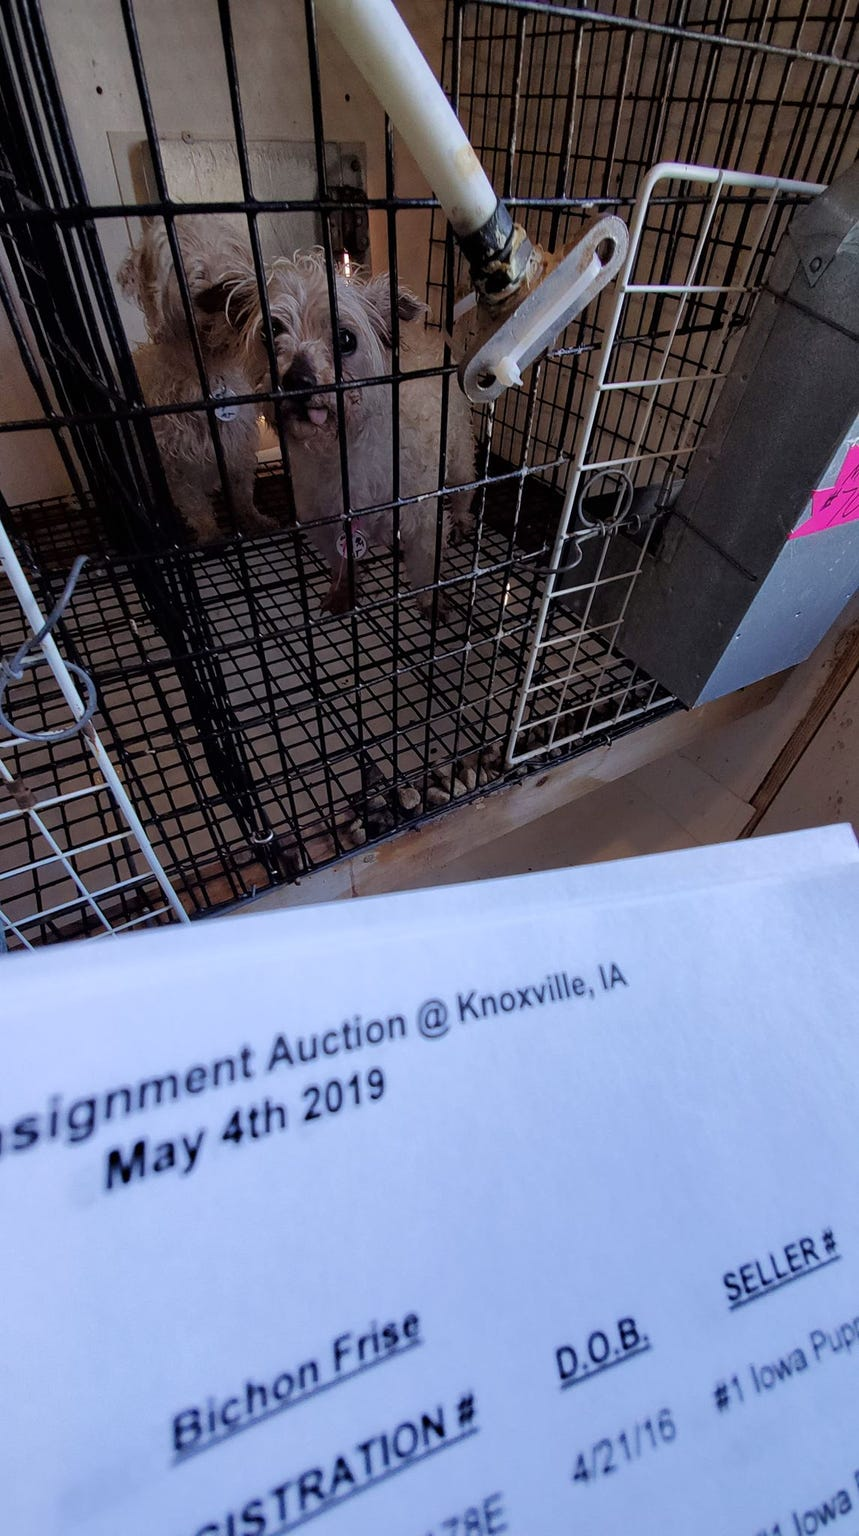 Dogs wait their turn to be sold at a May 4, 2019, auction at Double G Kennels in Knoxville, Ia. By the end of the auction, 44 buyers took more than 200 dogs to new homes across 10 states.